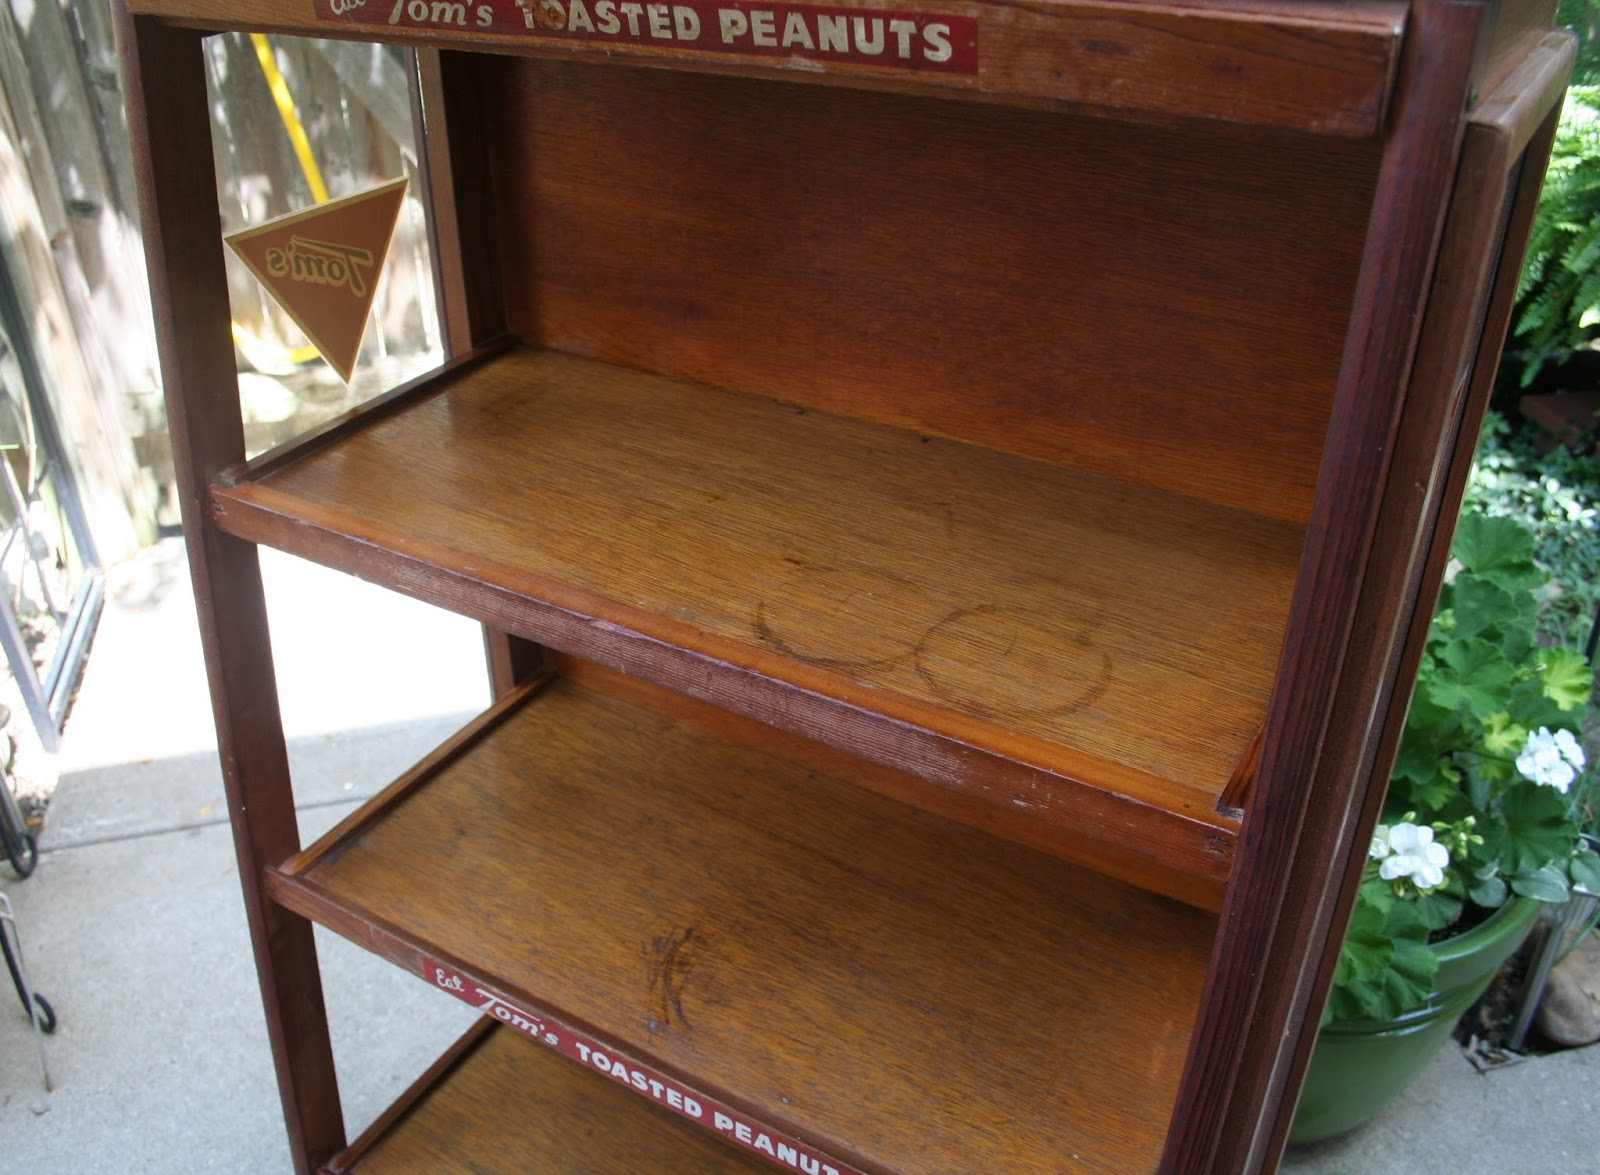 Antique Candy Display Cabinet